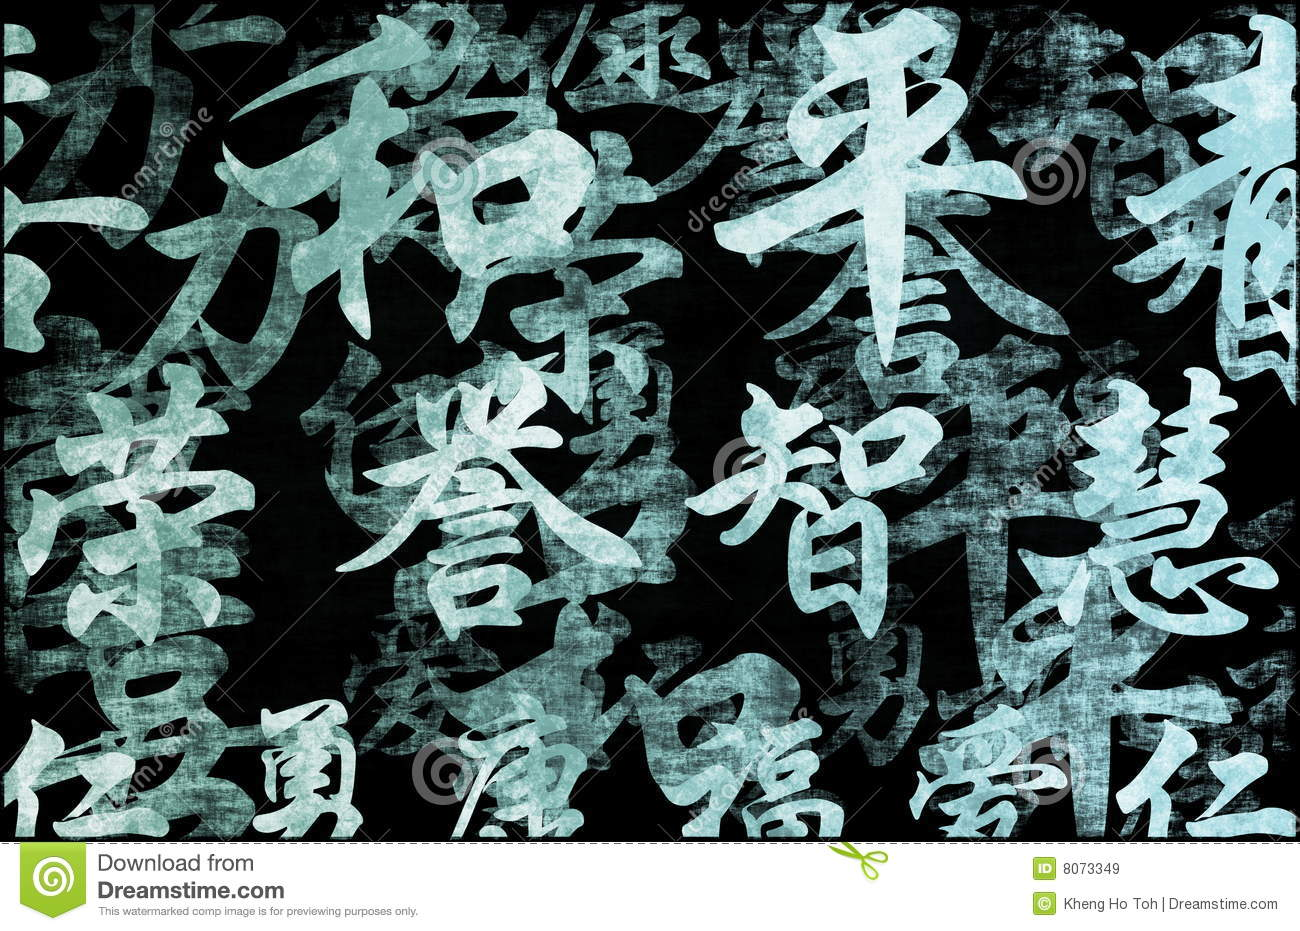 Royalty Free Stock Images Chinese Writing Calligraphy Background Image8073349 on Latest Old English Writing